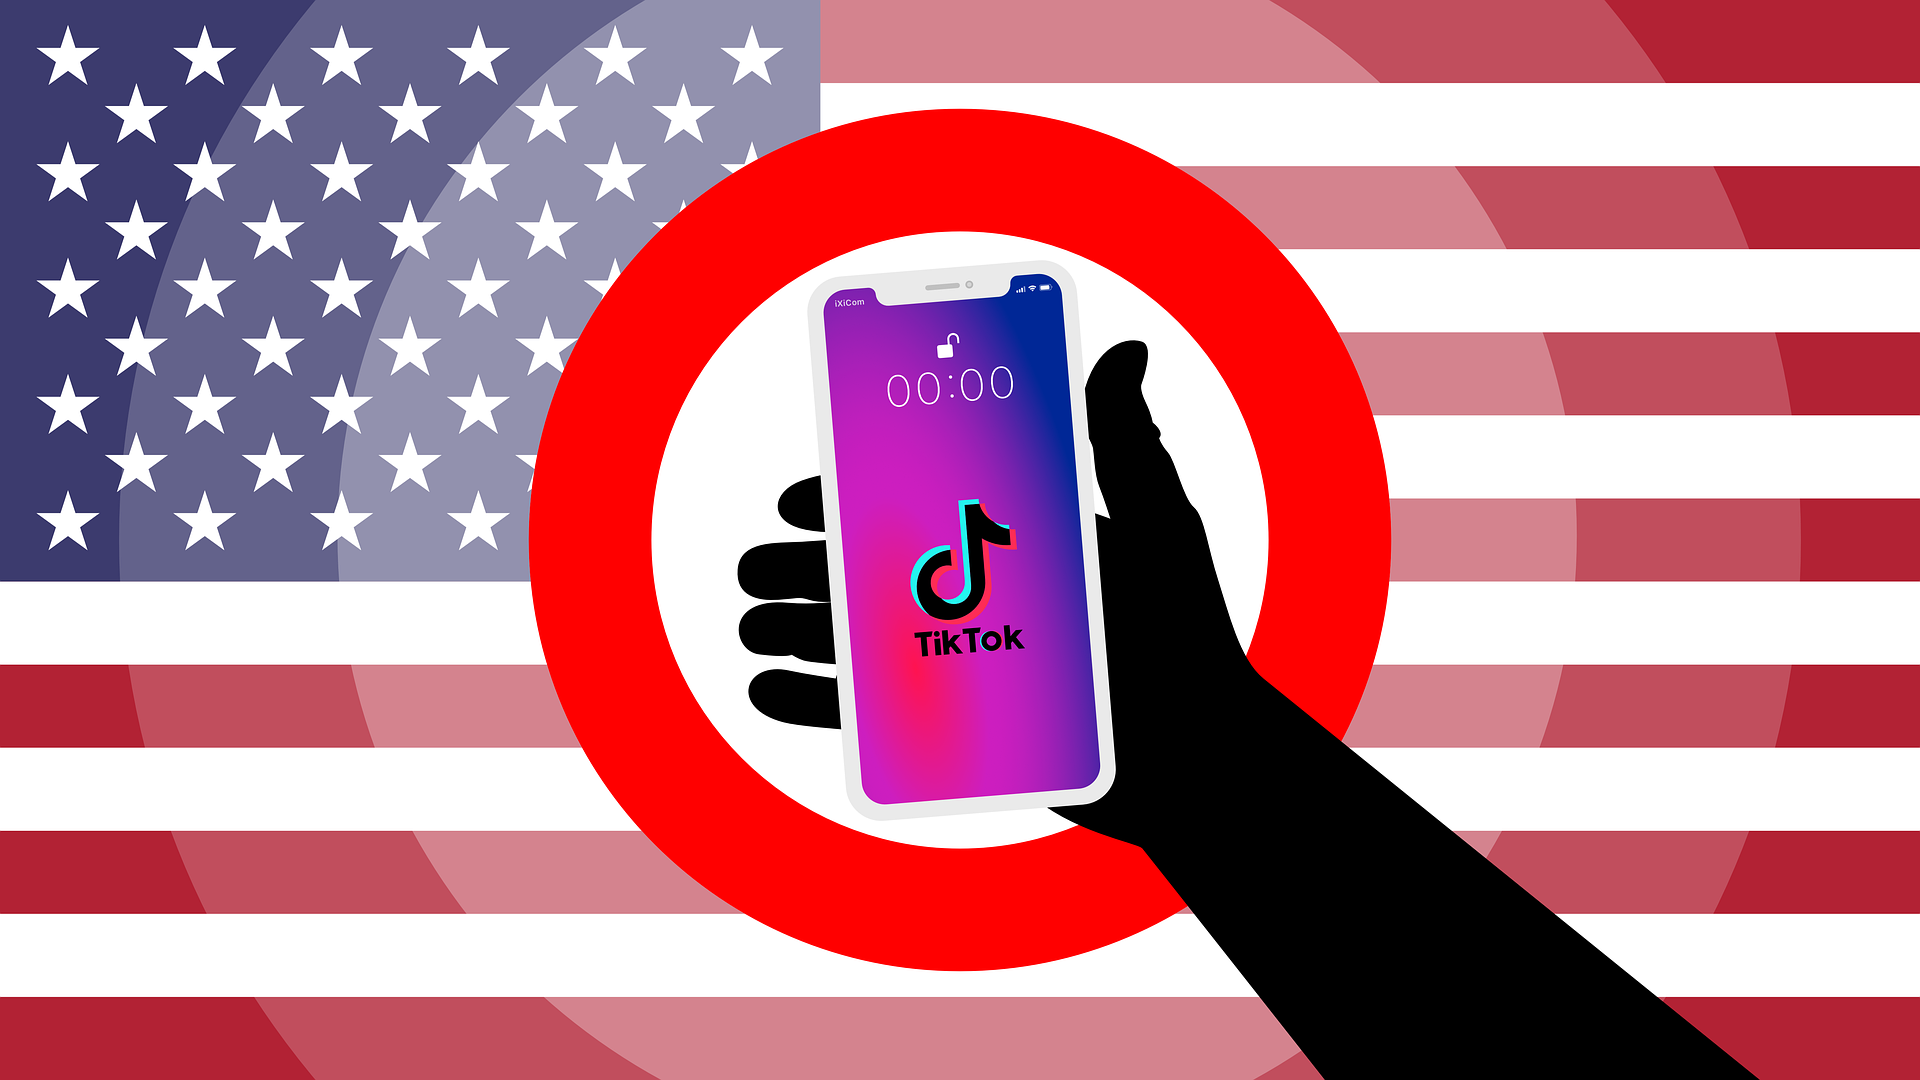 Trump Approved! ByteDance Announces The TikTok Agreement, The US Government Has Postponed The Download Ban